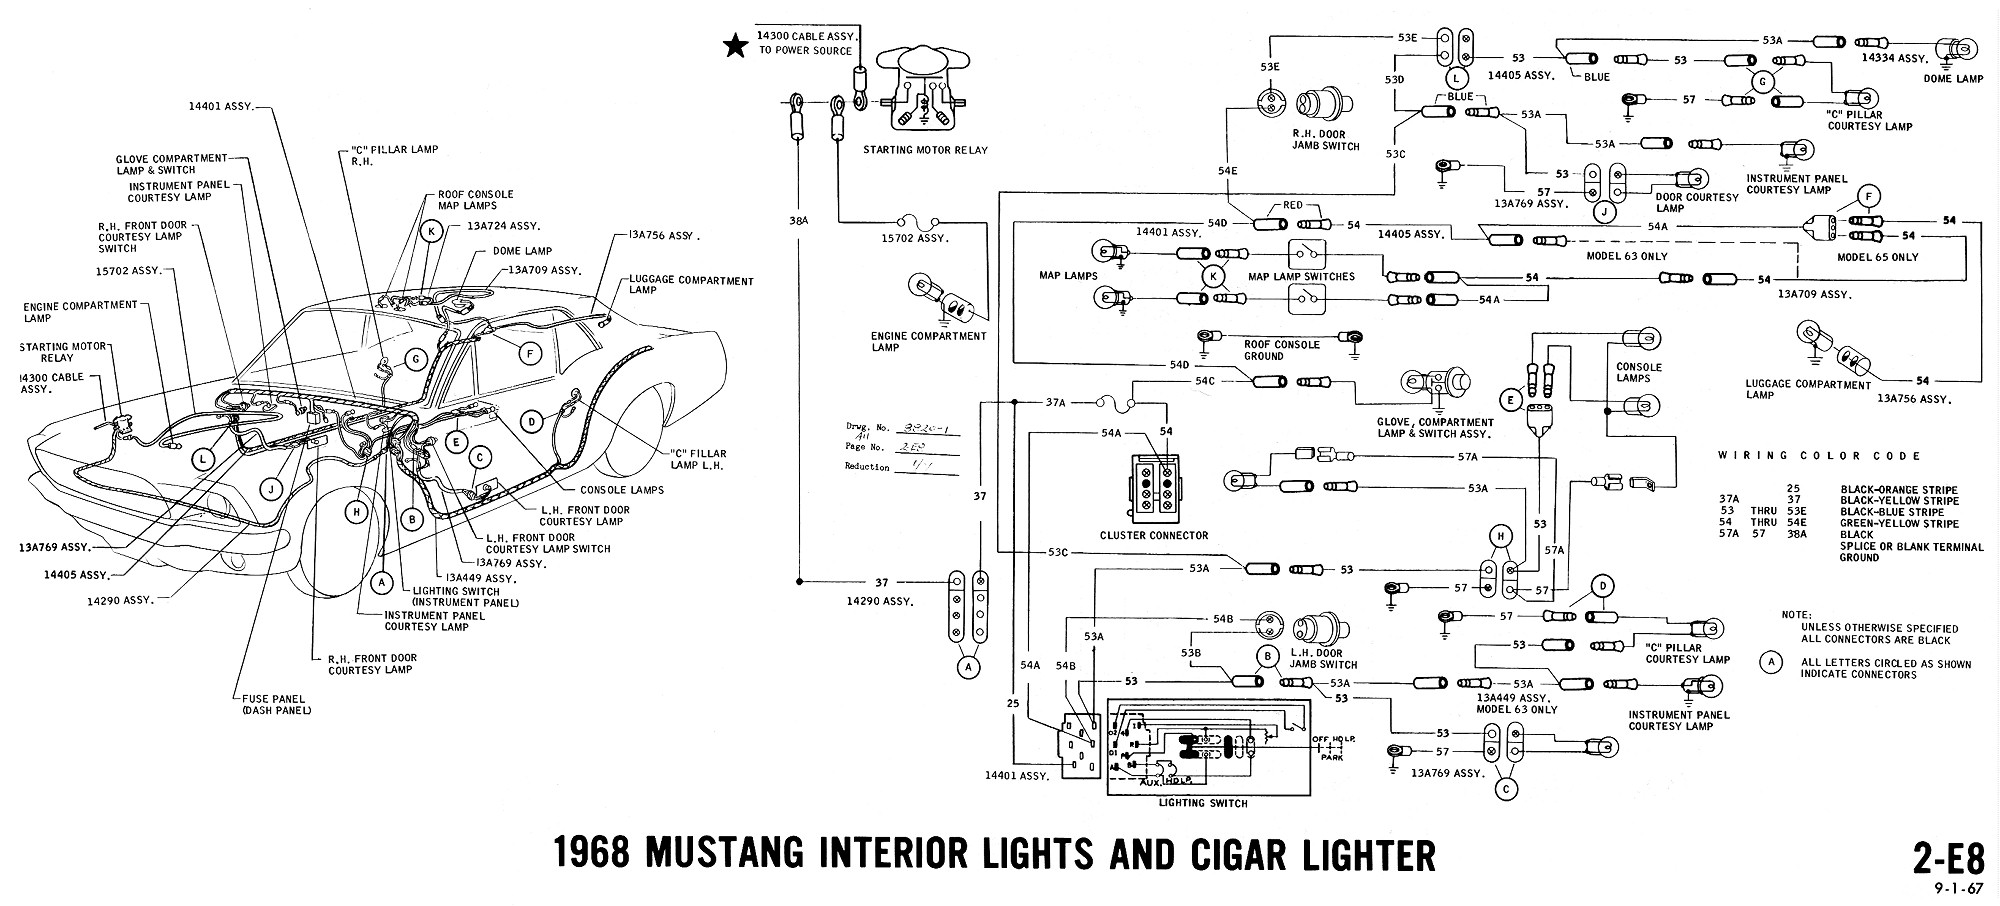 1968 mustang wiring diagrams and vacuum schematics average joe rh  averagejoerestoration com 1968 mustang under dash